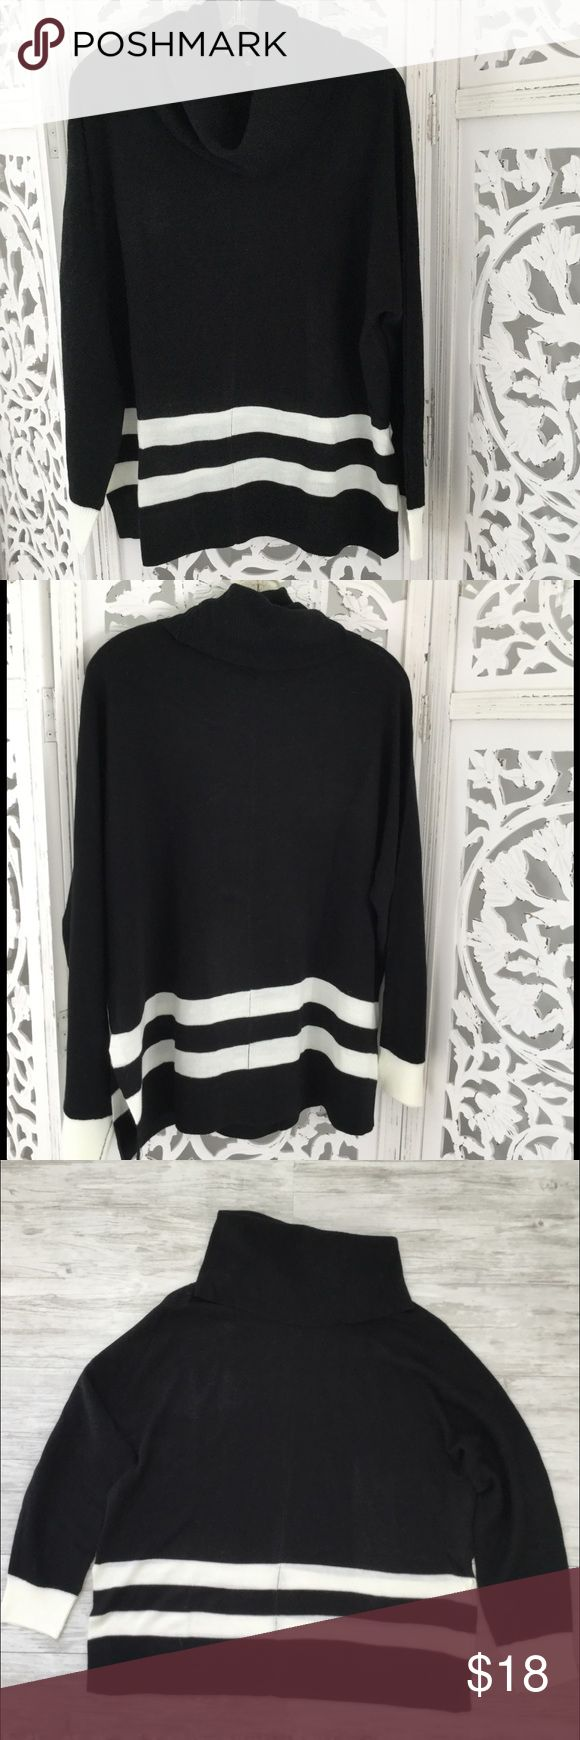 """Wendy Williams Black & White Striped Sweater - L Black & White cowl neck sweater has 2 white stripes at bottom and white sleeve cuff. Has sewn center seams at front, back & sides., 8"""" side slits. Length from back neck seam 26"""". Approx. bust circumference laying flat 48"""".  100% acrylic. Hand wash cold. Lay flat to dry. Size L. Purchased from Home Shopping Network (HSN). The Wendy Williams Collection.  NWOT. Wendy Williams Sweaters Cowl & Turtlenecks"""